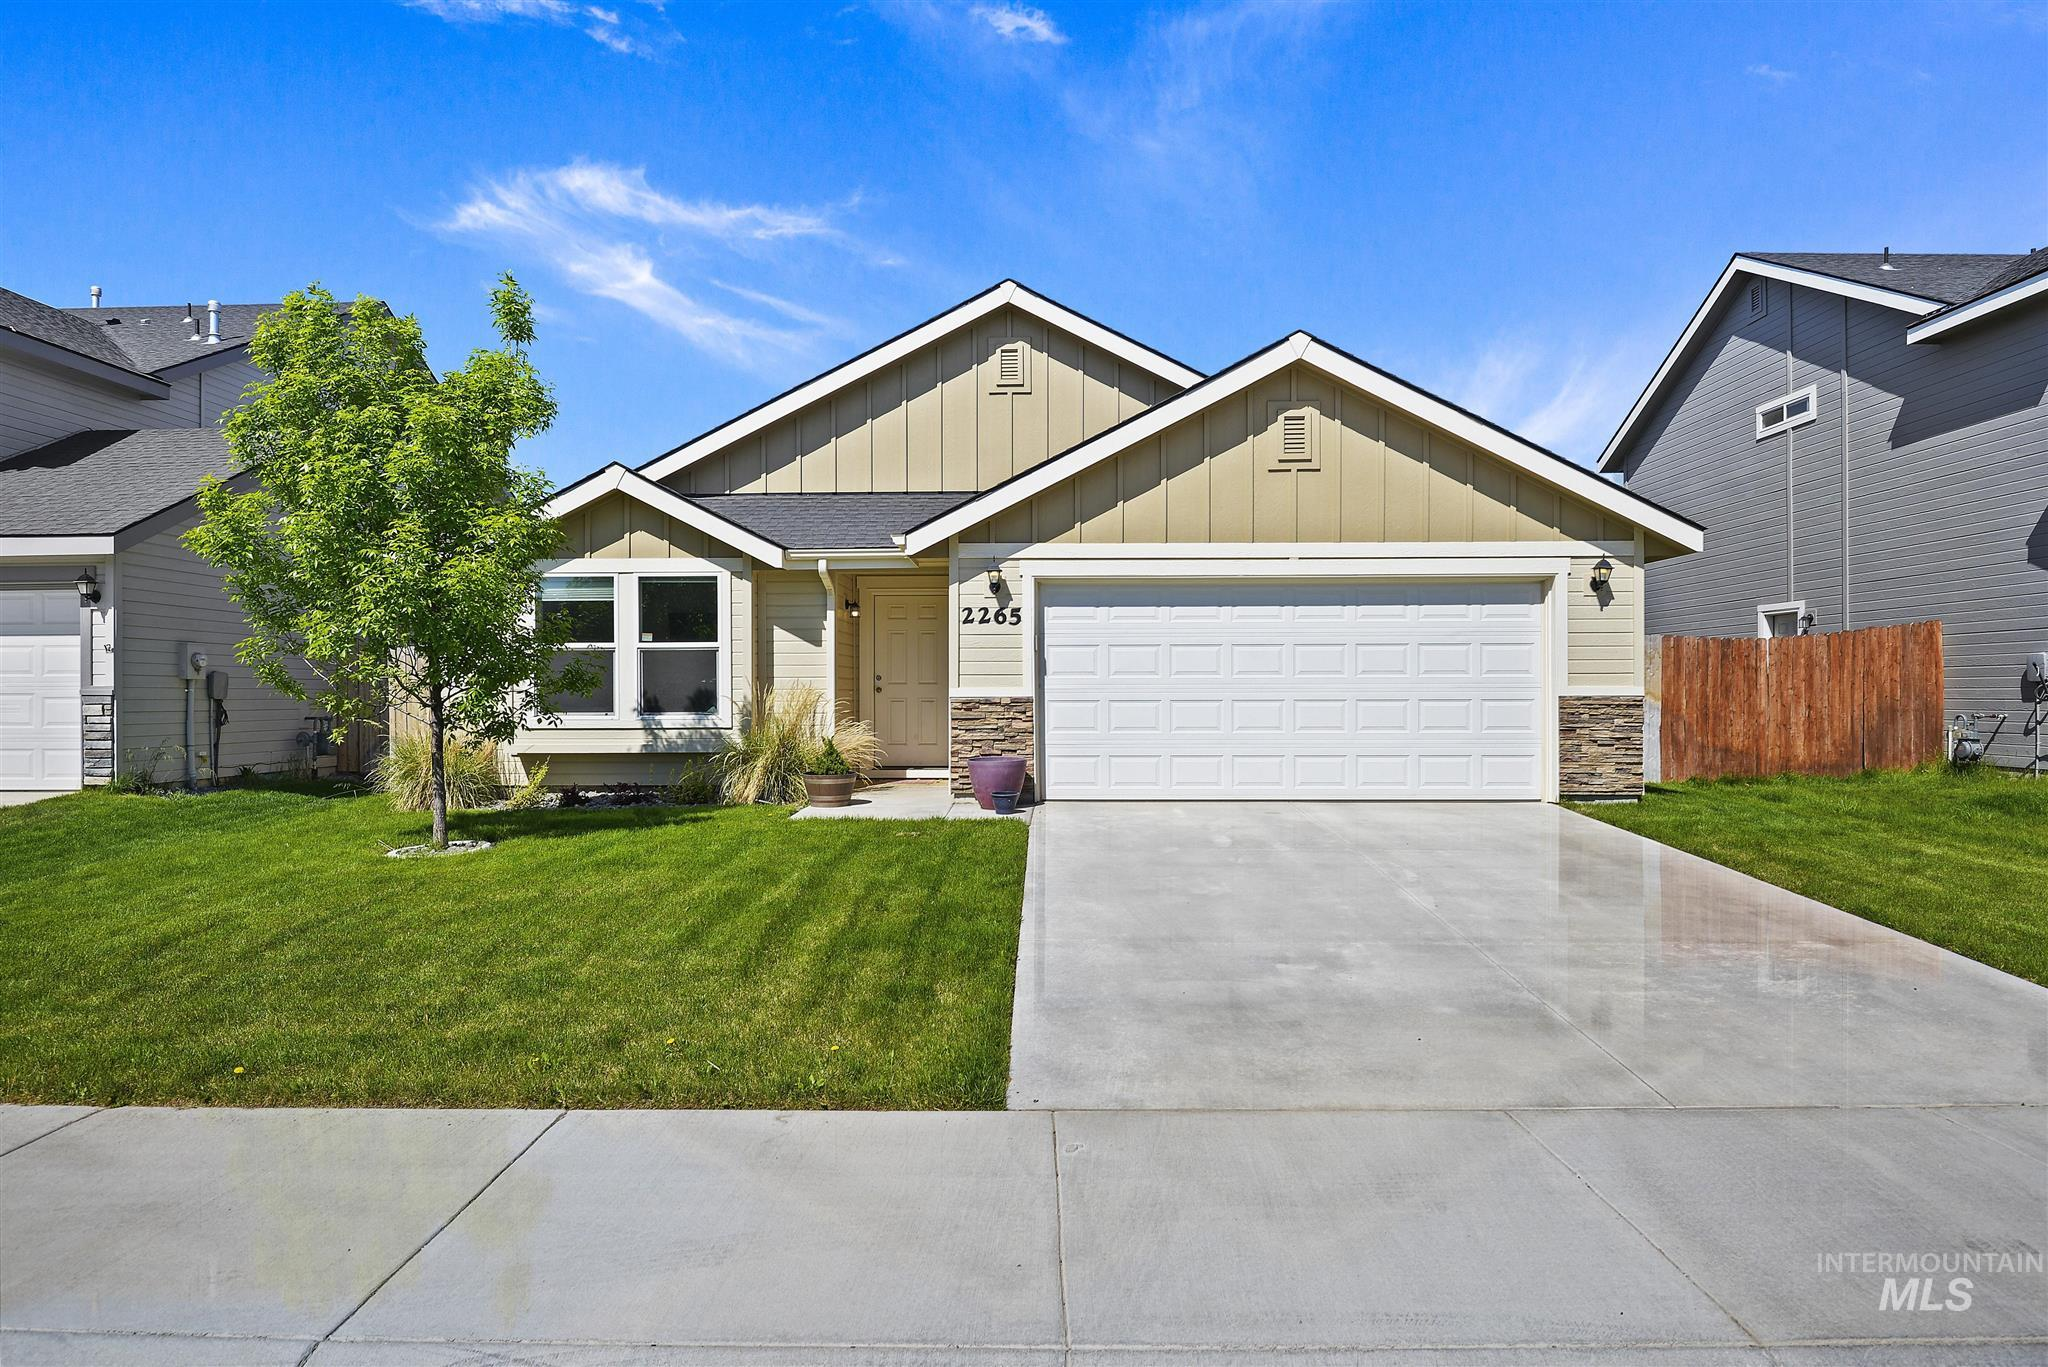 2265 N Greenville Ave Property Photo - Kuna, ID real estate listing